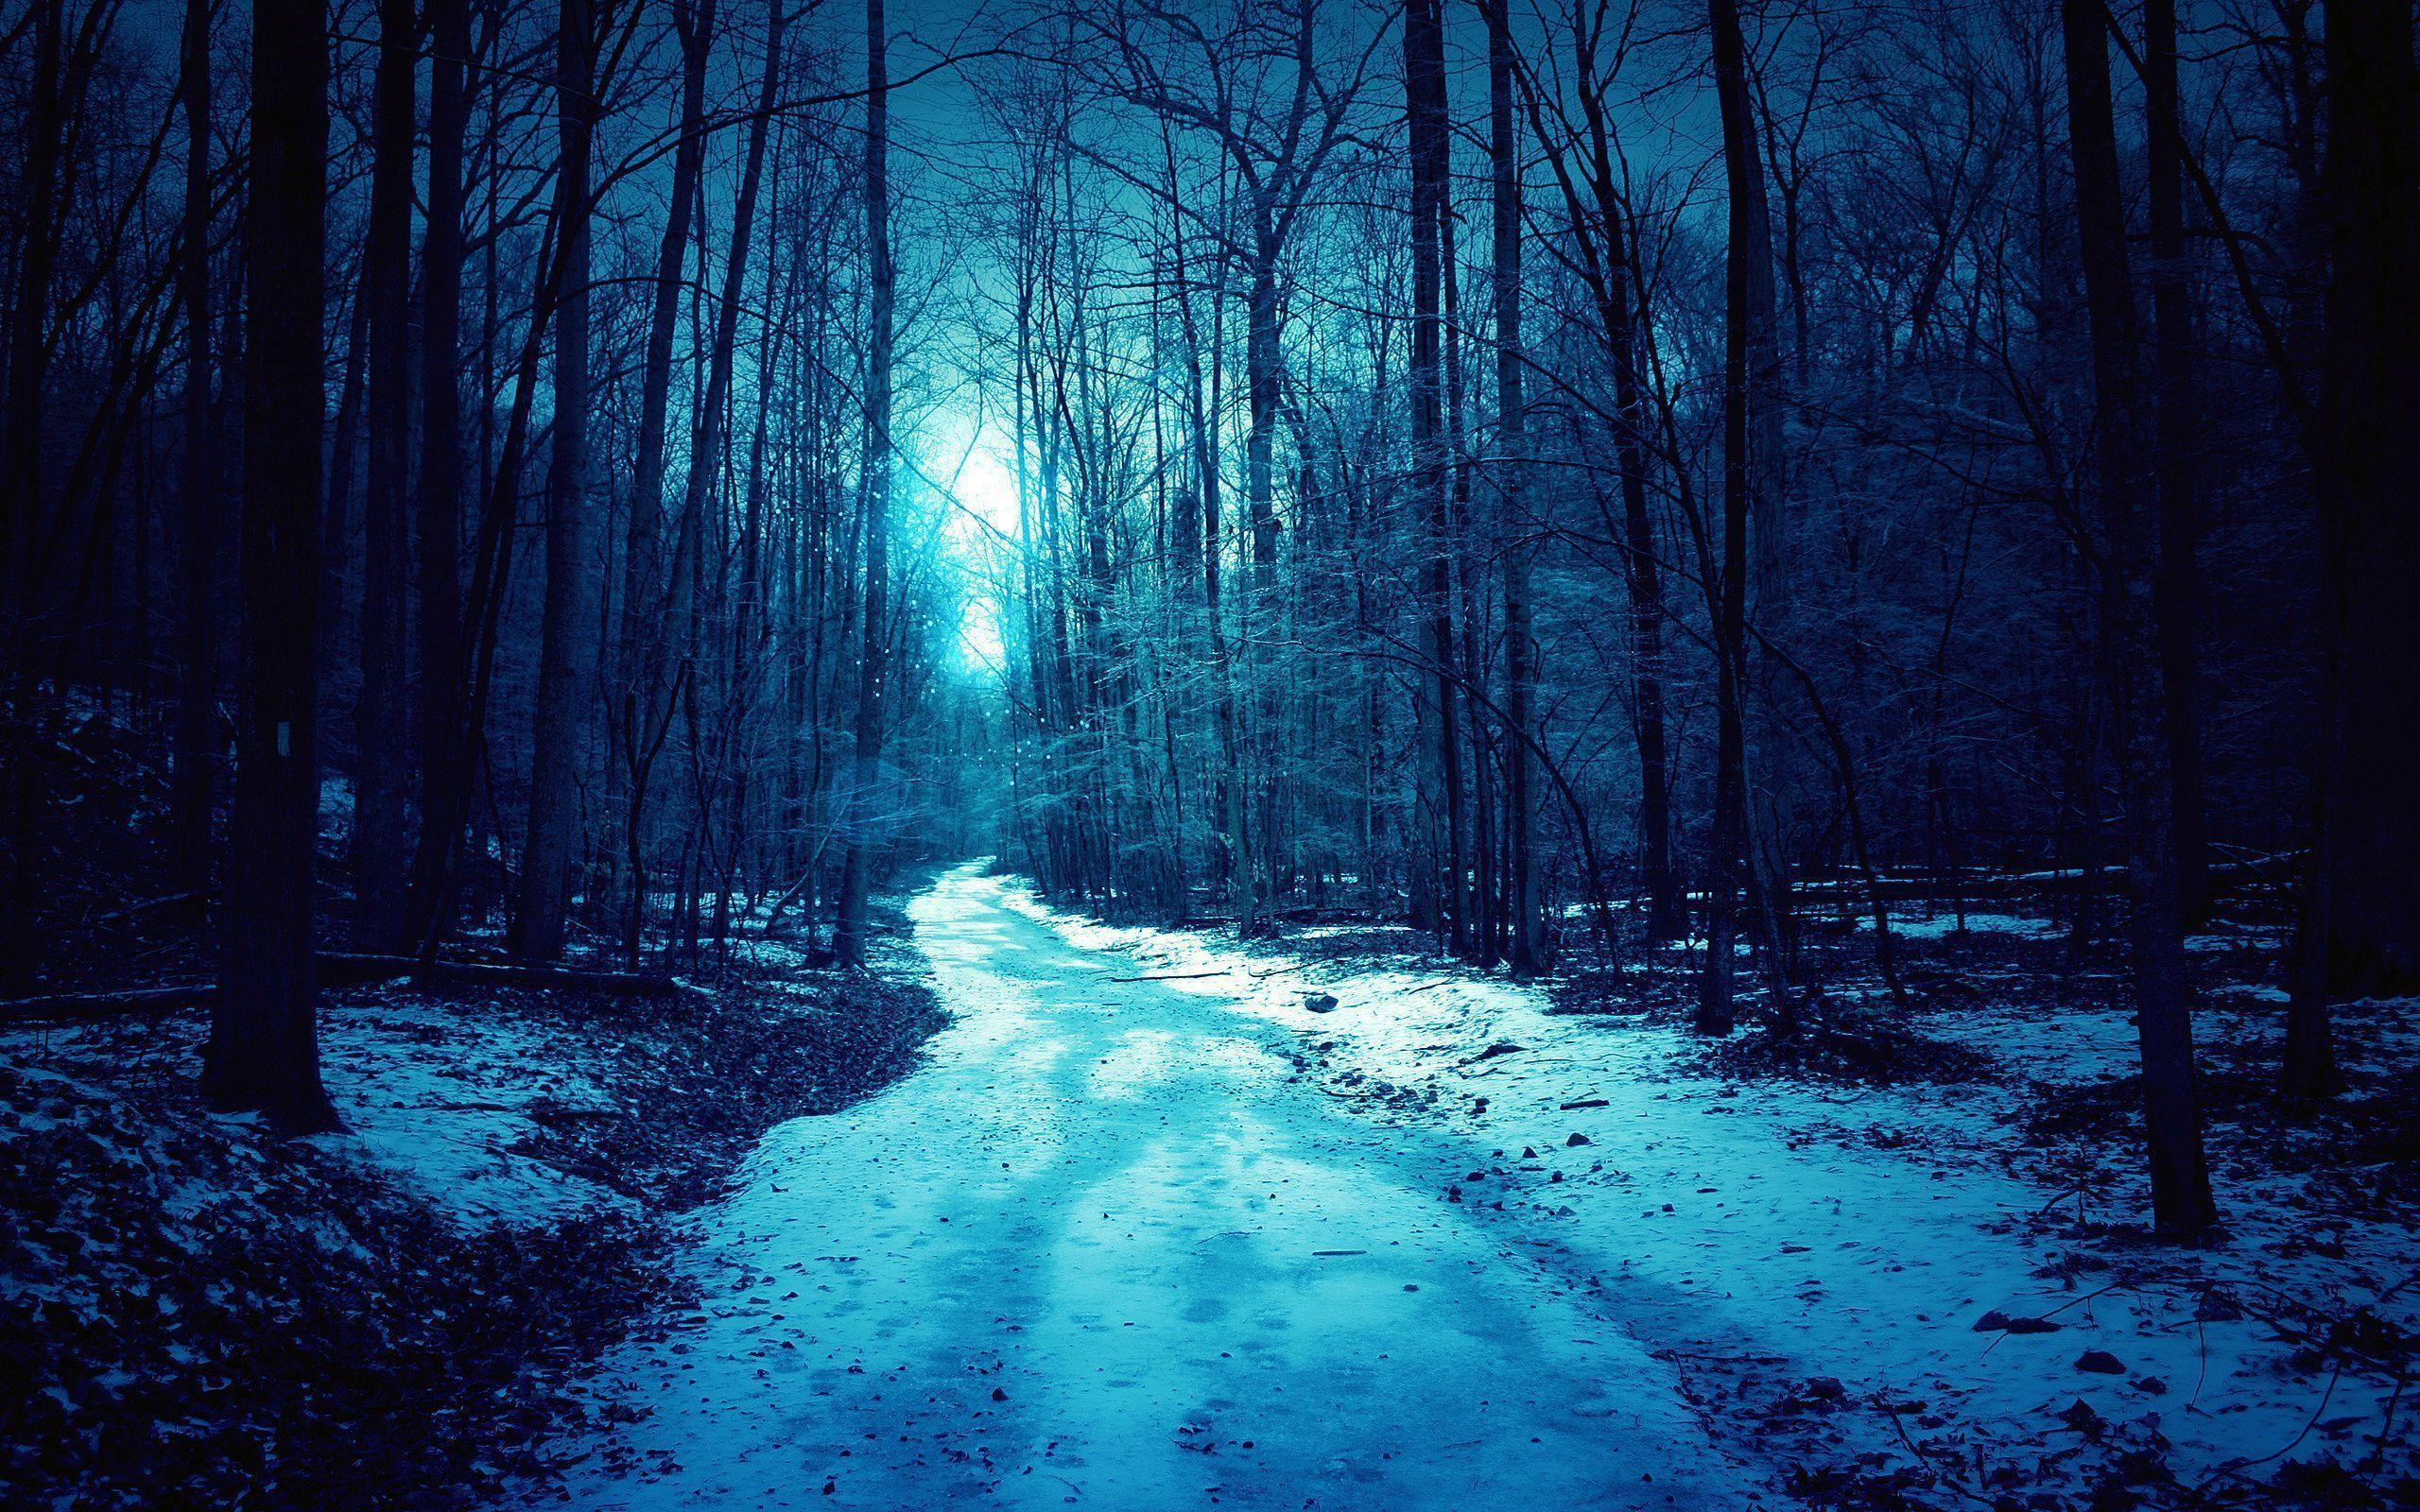 Winter Night Nature 1116 Hd Wallpapers